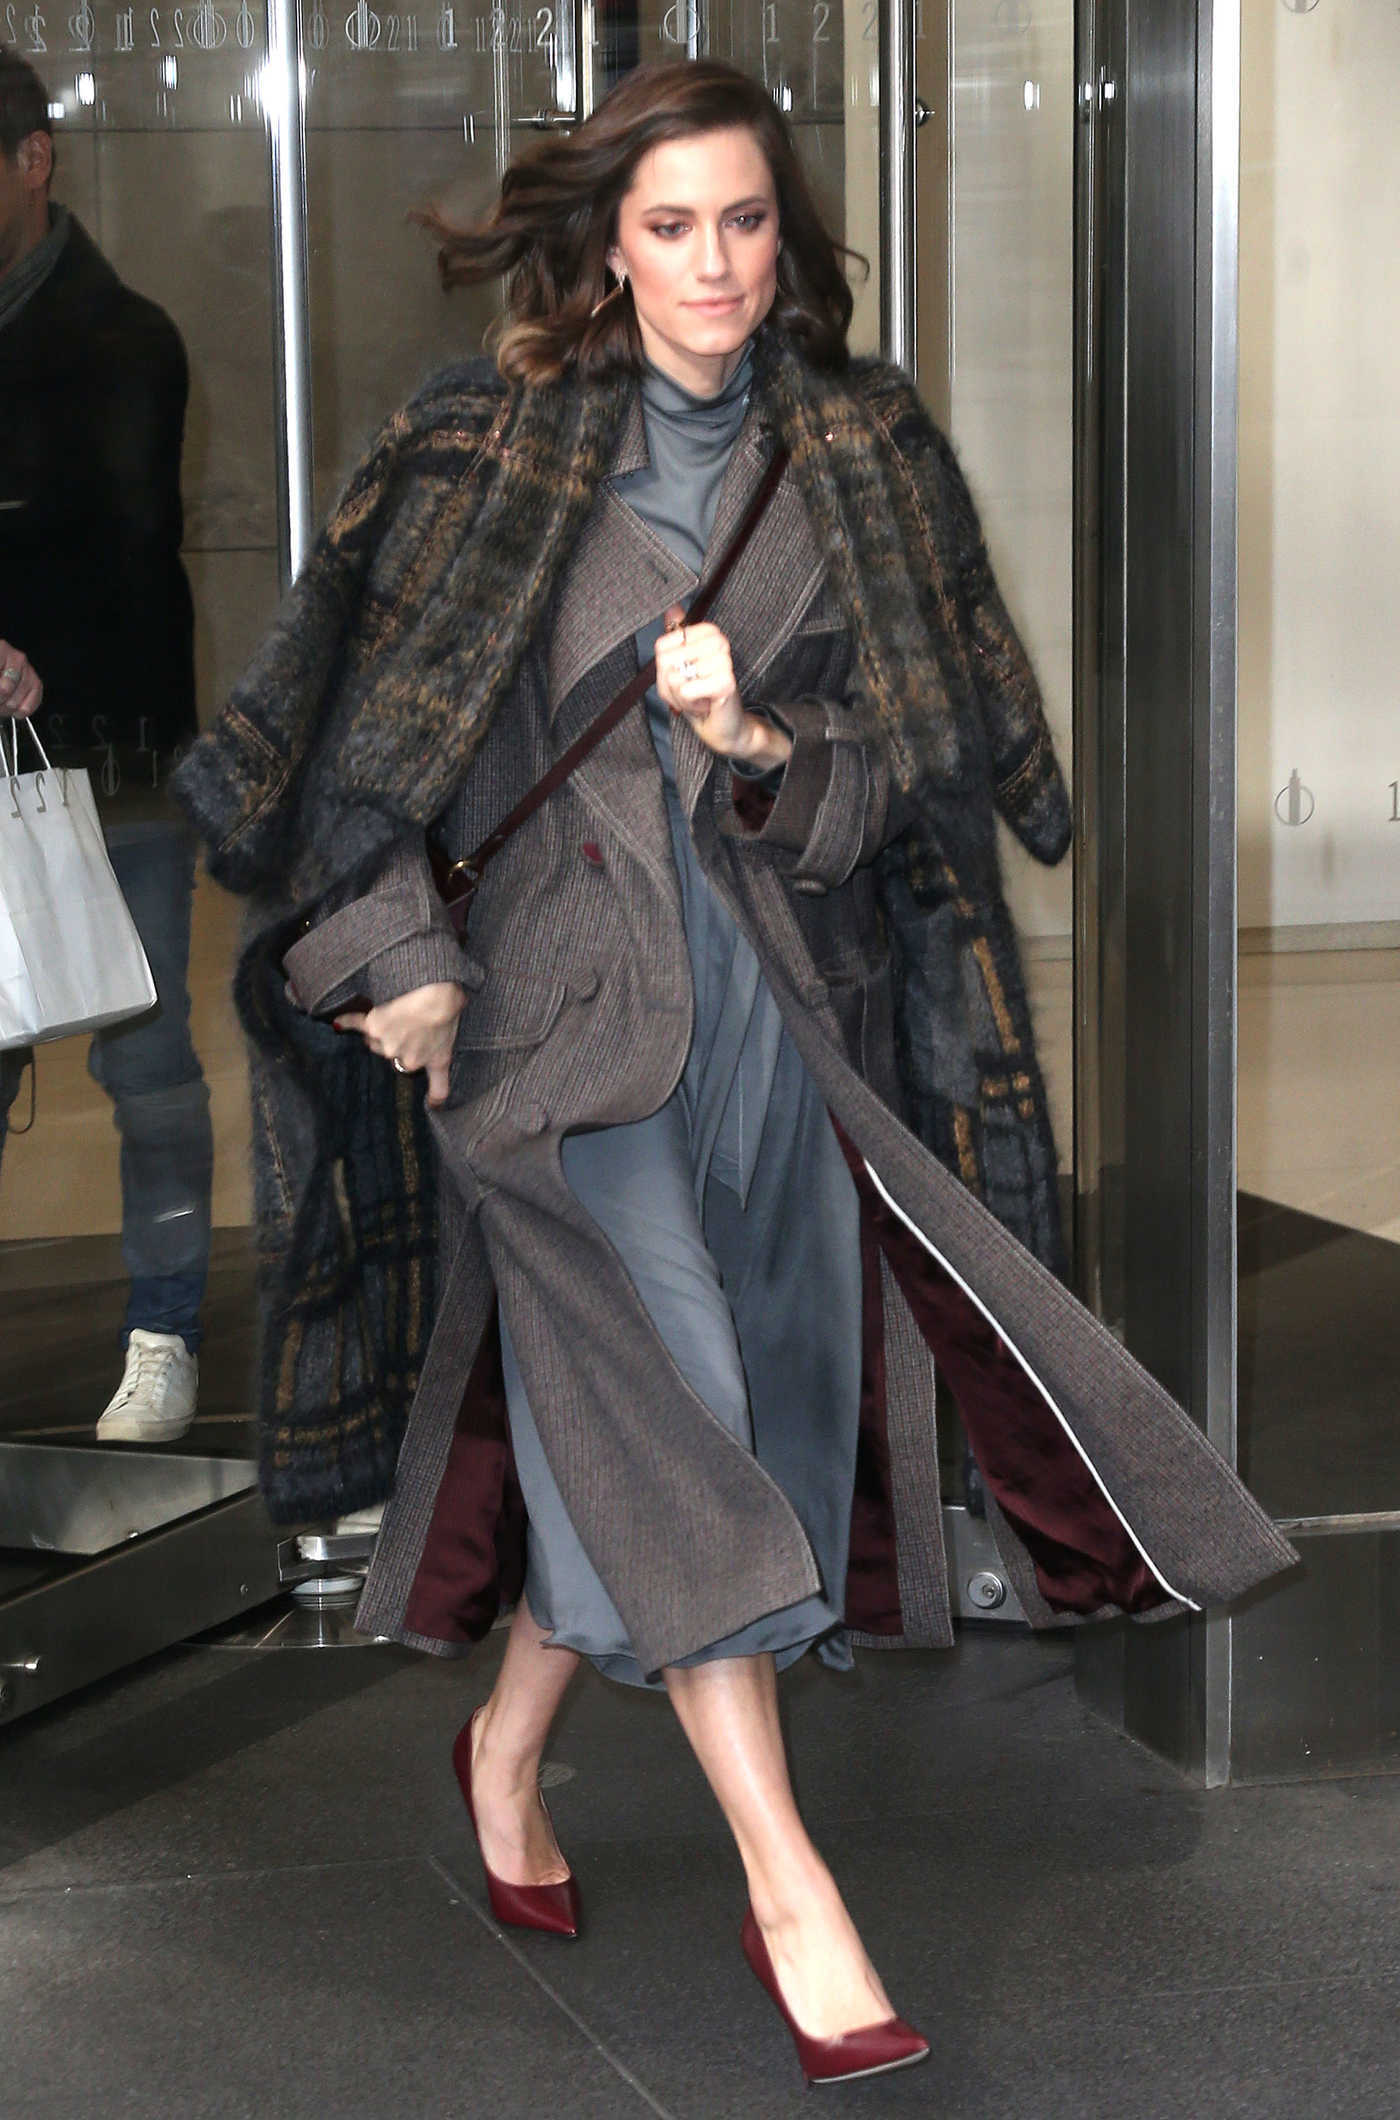 Allison Williams in a Plaid Coat Leaves the Sirius Radio in New York 01/07/2019